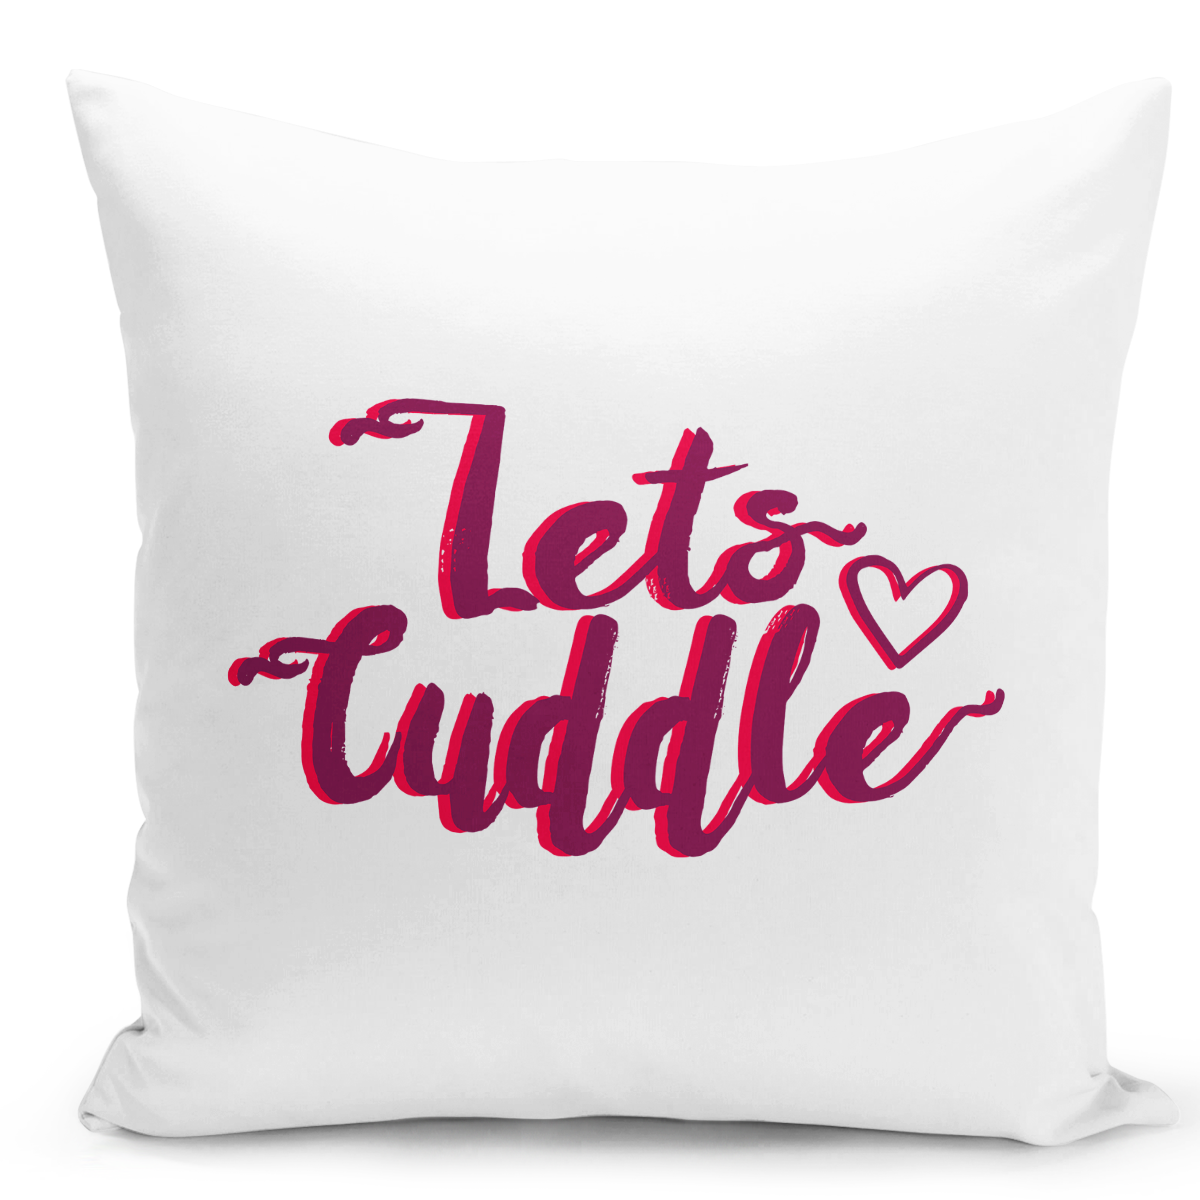 16x16-inch-Throw-Pillow-for-Home-Decor-with-Stuffing-Lets-Cuddle-Couples-Pillow-